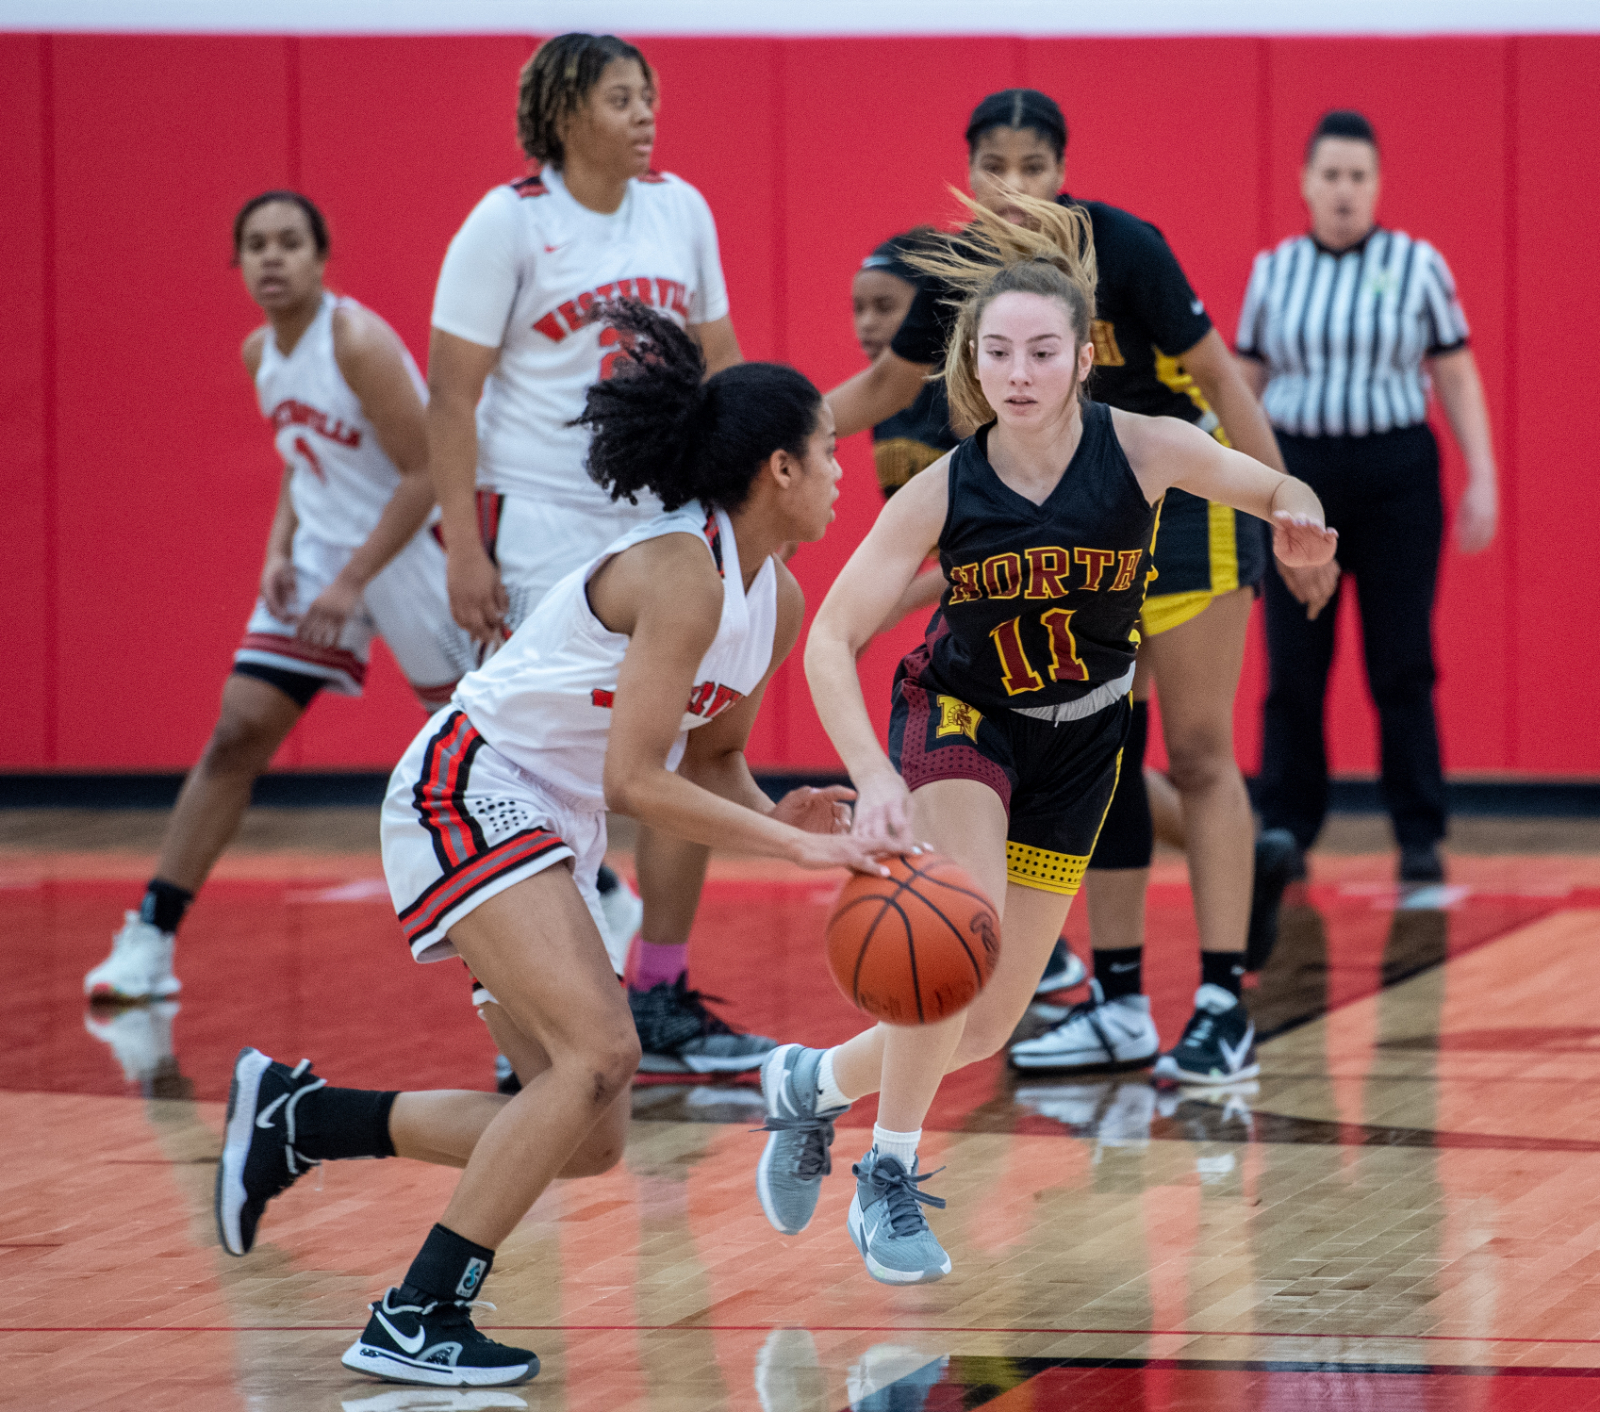 PHOTO GALLERY: North girls defeat South 52-49